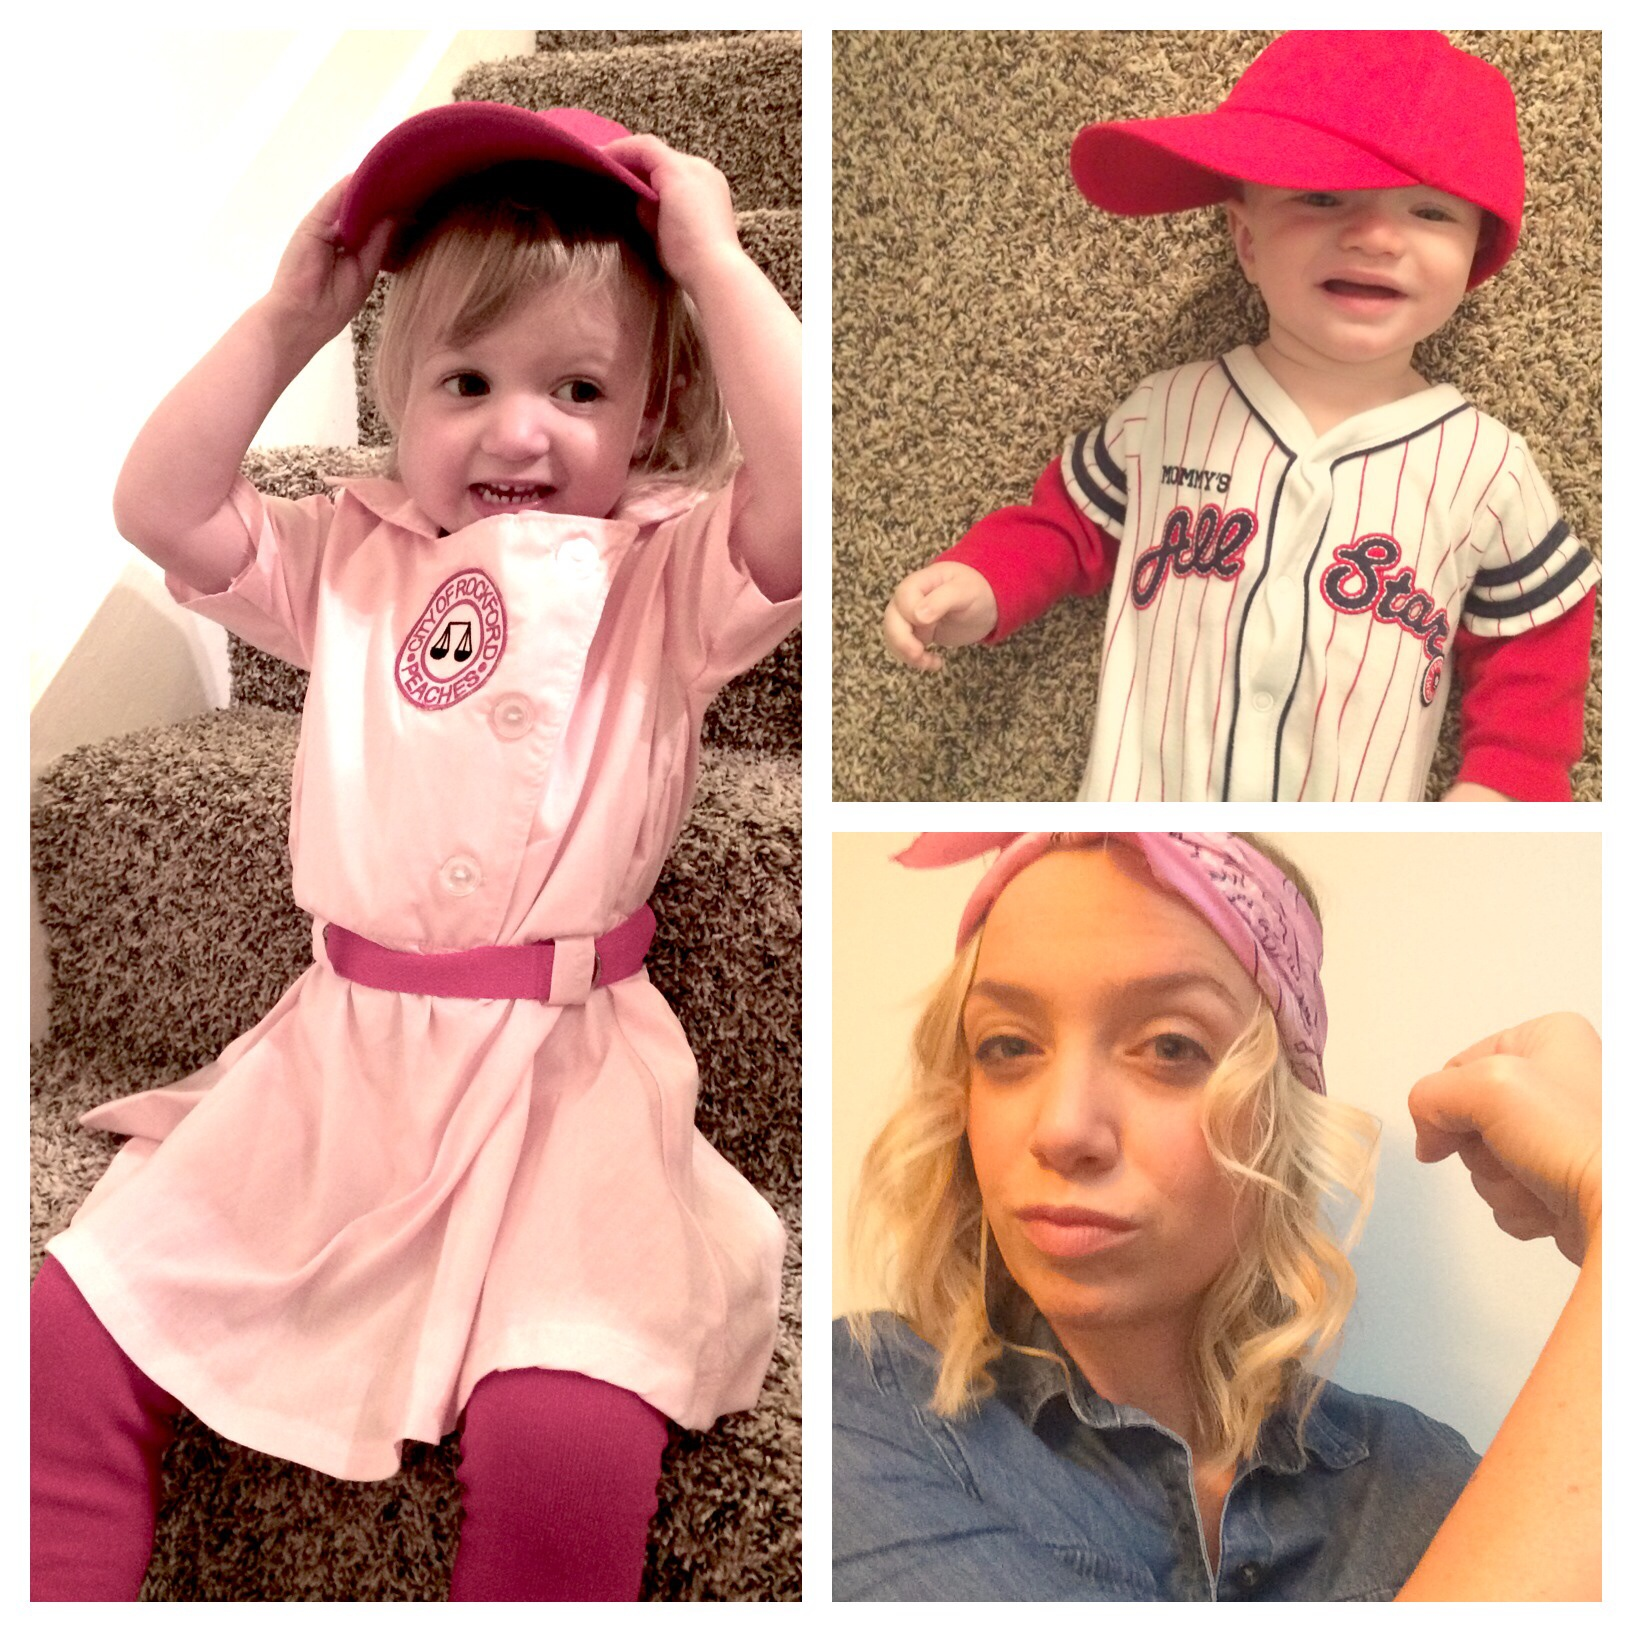 Rockford Peach, baseball player, Rosie the Riveter @ohbotherblog